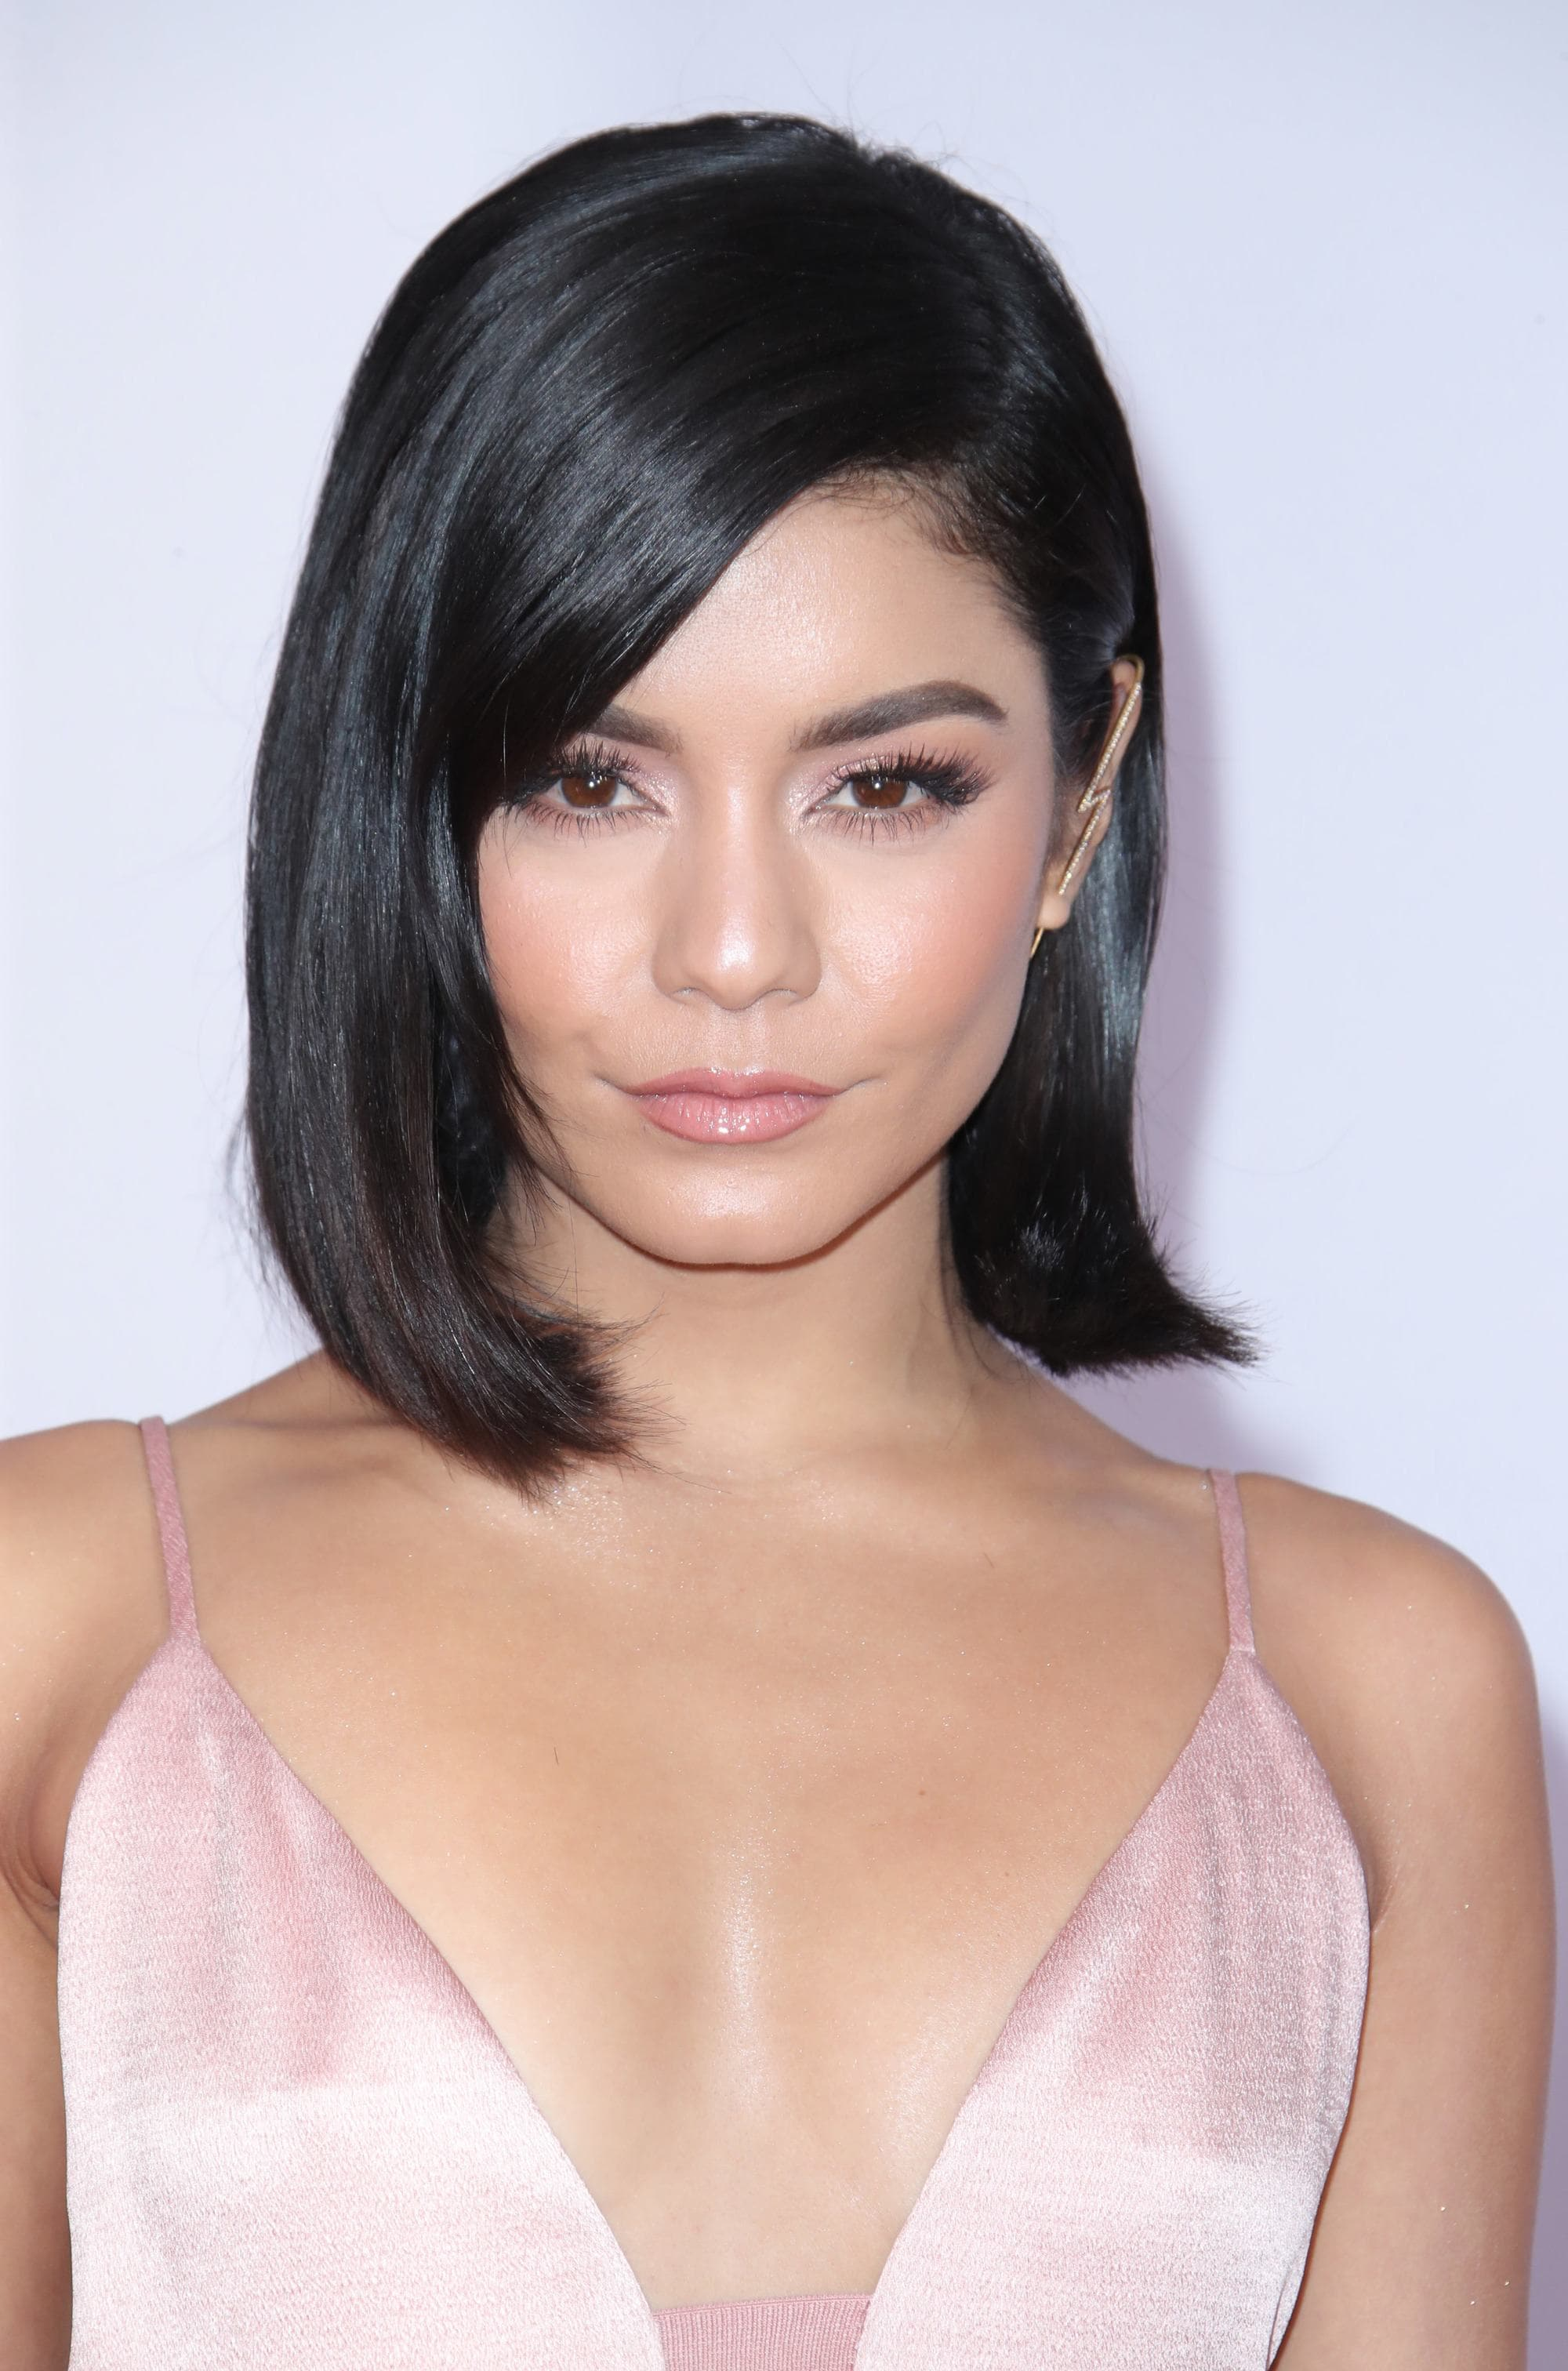 Winter hairstyles 2018: Vanessa Hudgens at the 2018 AMAs with a sleek shiny bob with a side parting, wearing a soft pink silky cami dress